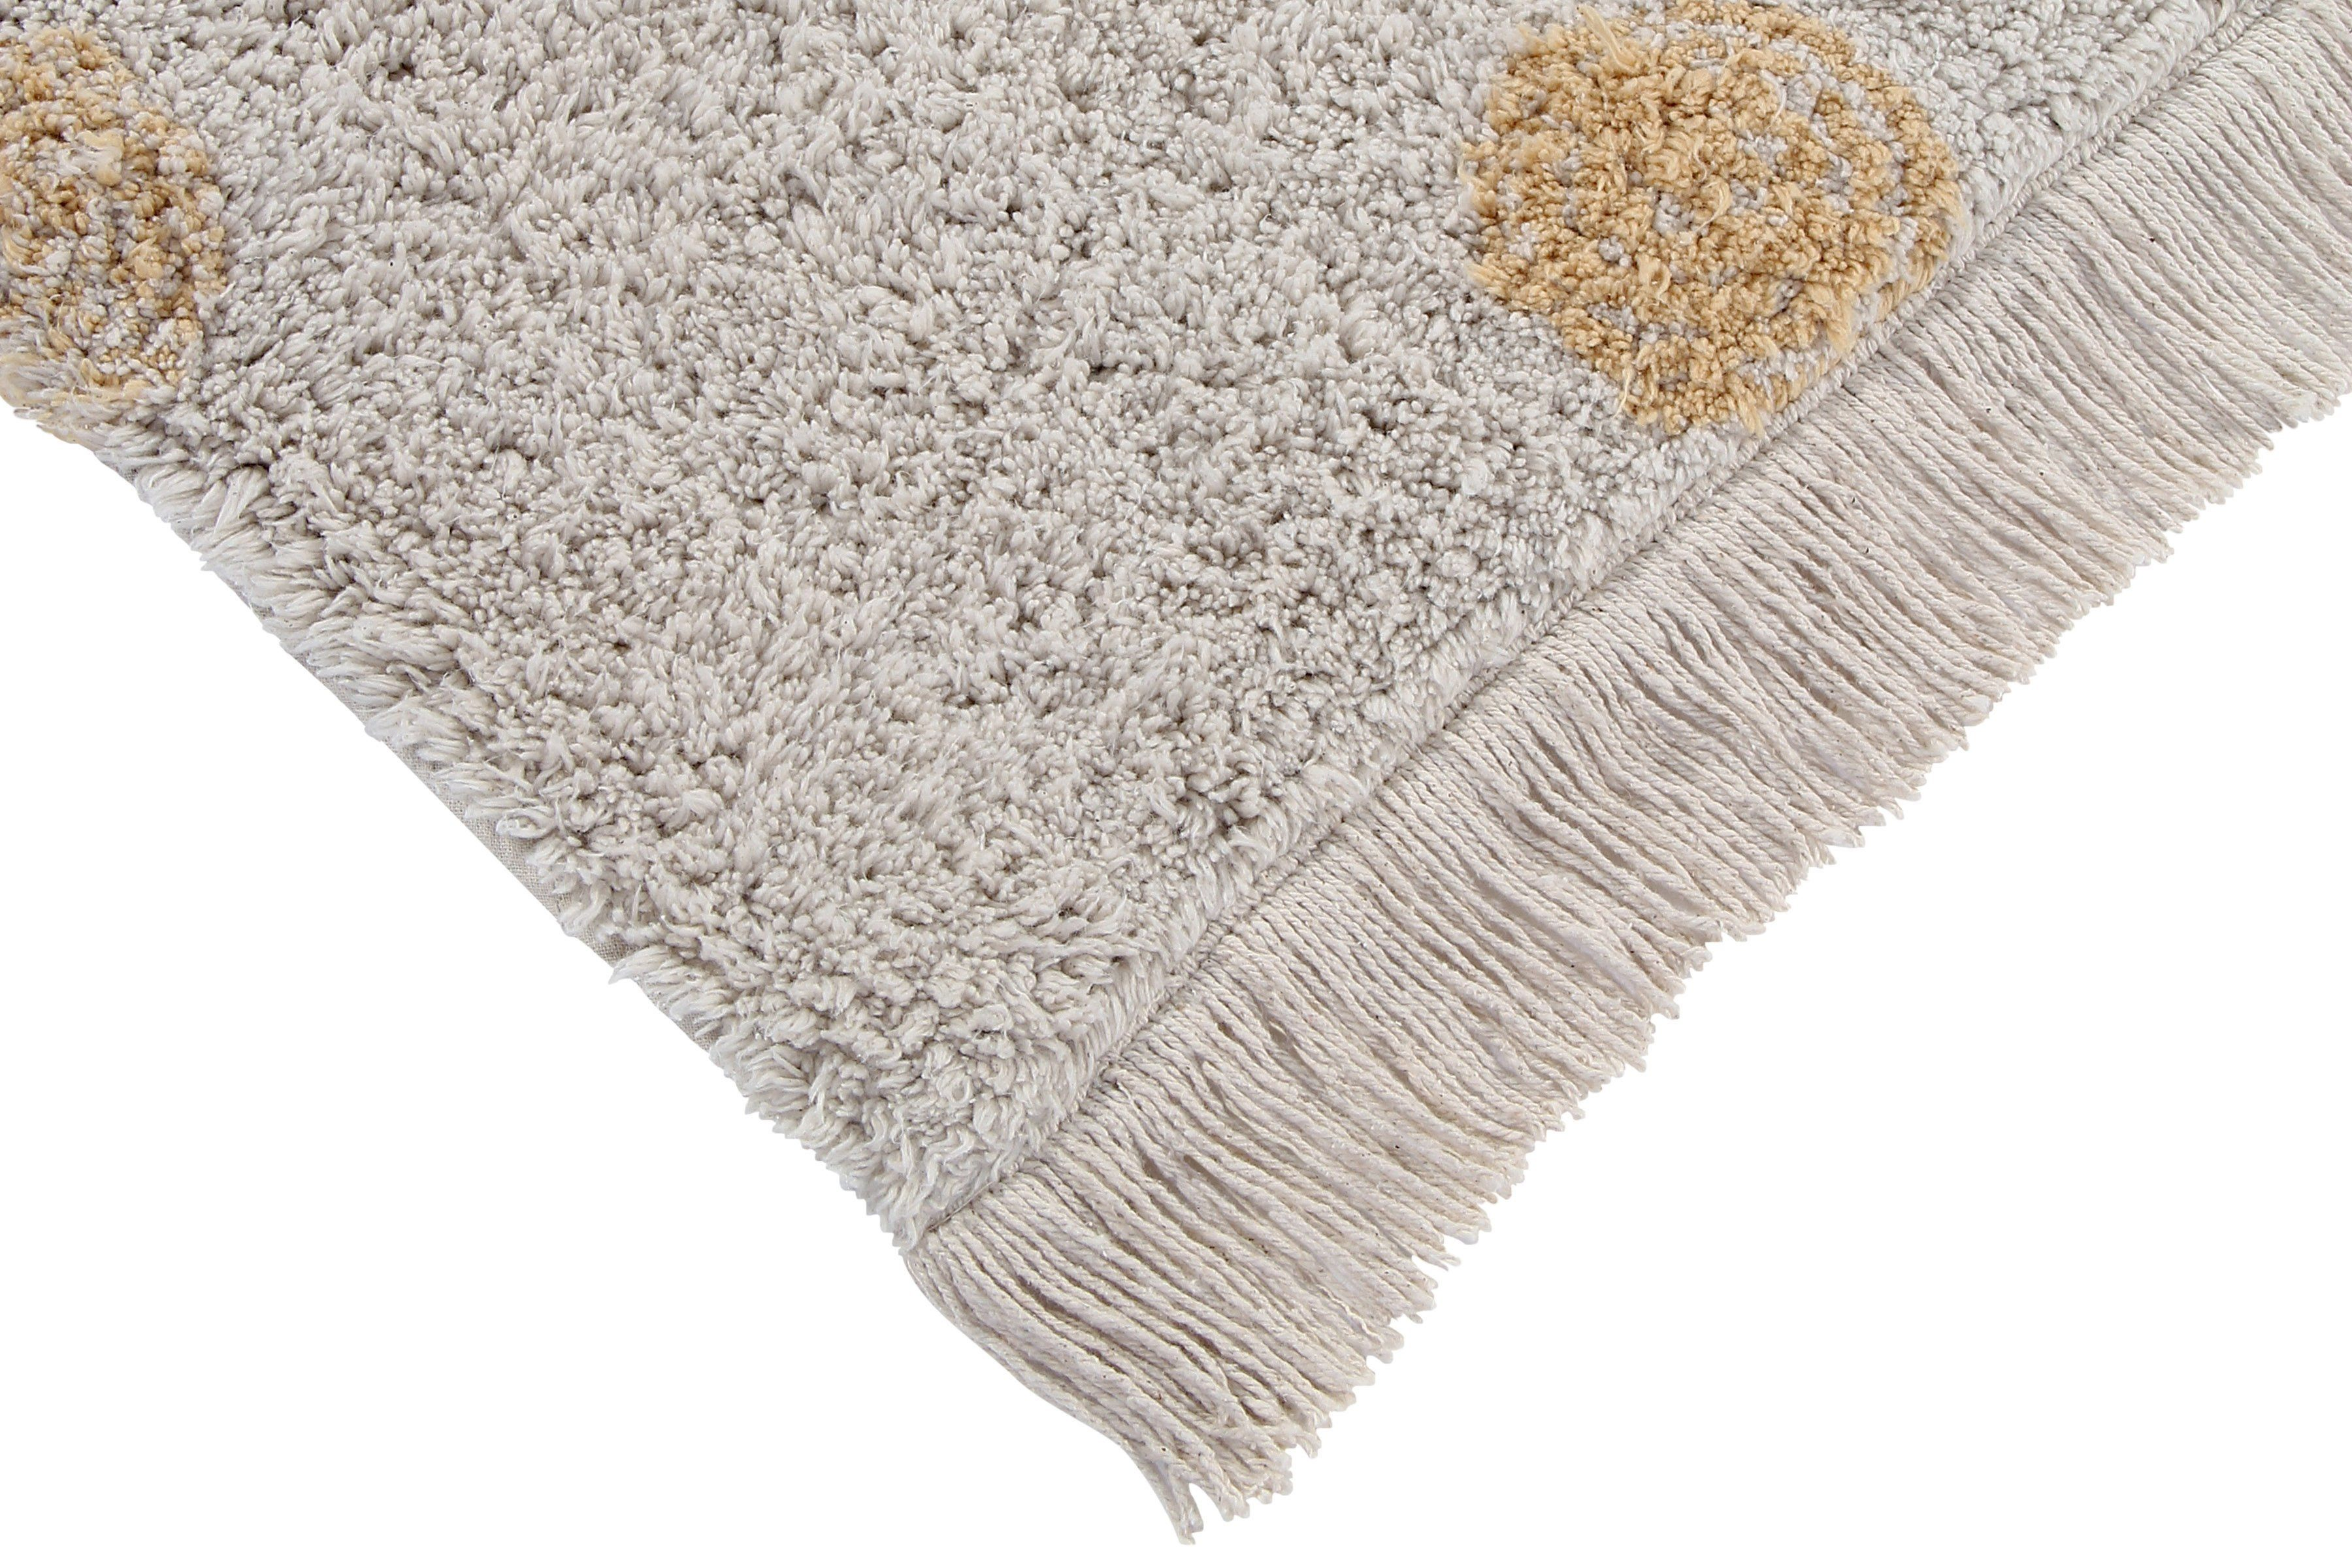 Hippy Dots Washable Rug - Honey - Project Nursery